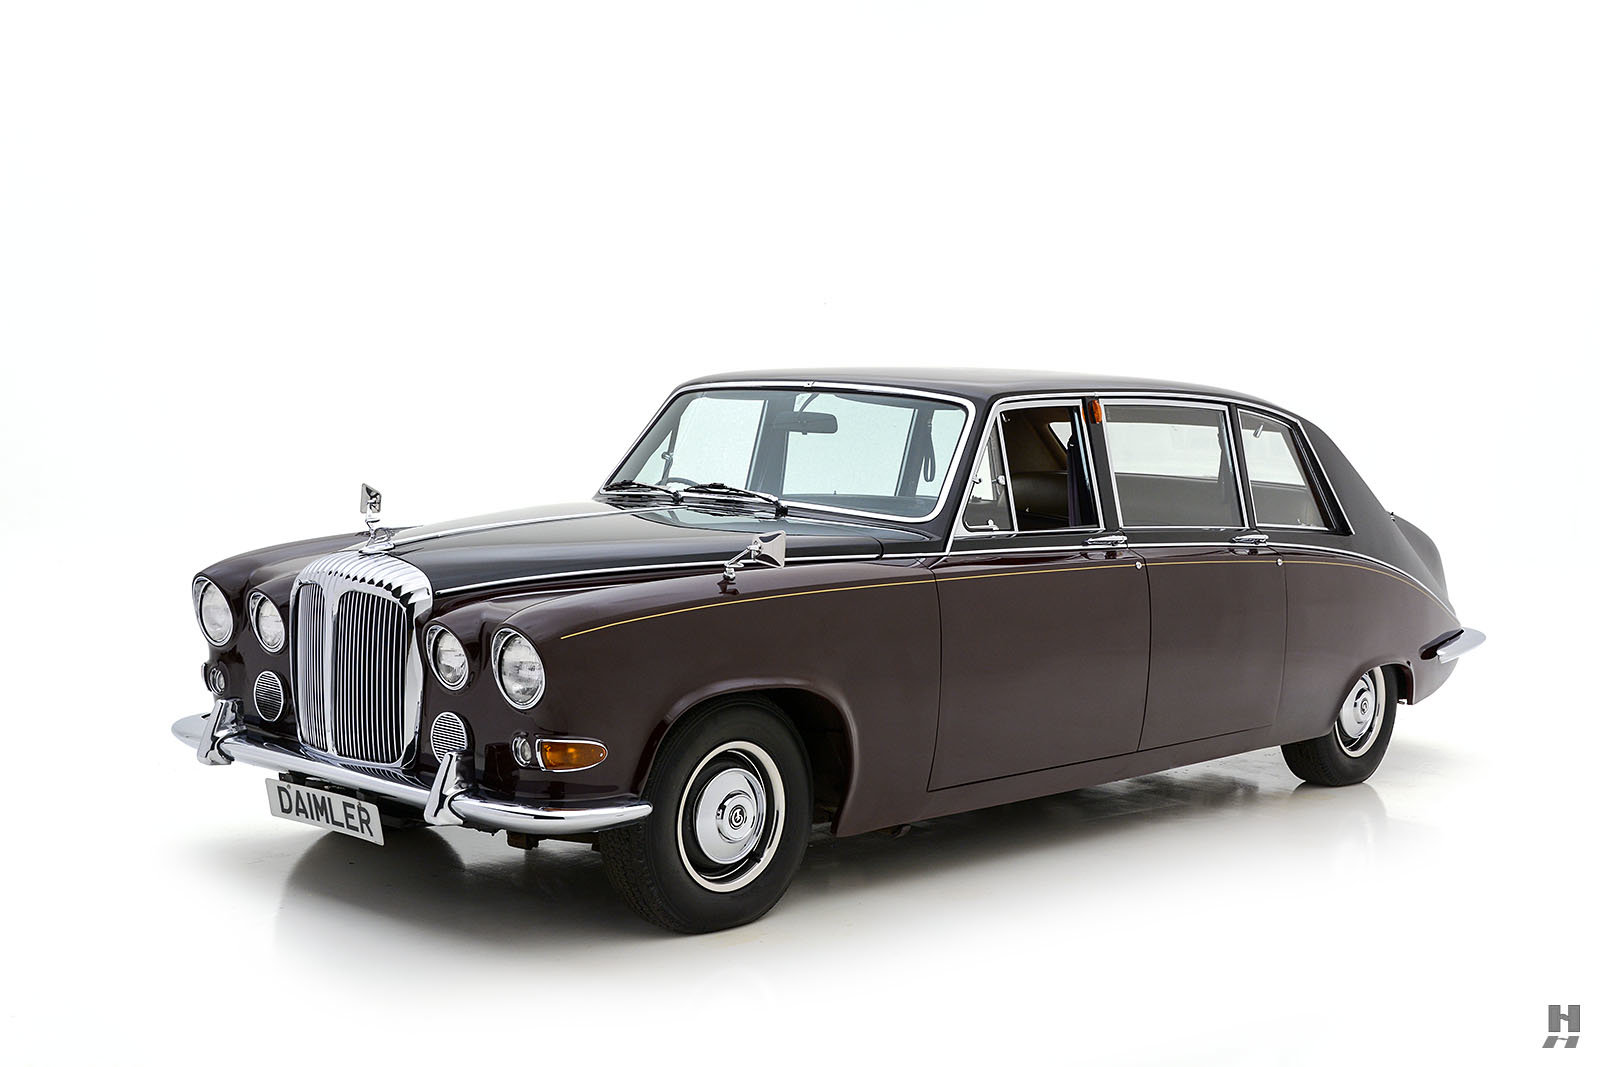 1976 DAIMLER DS420 LIMO For Sale (picture 1 of 6)